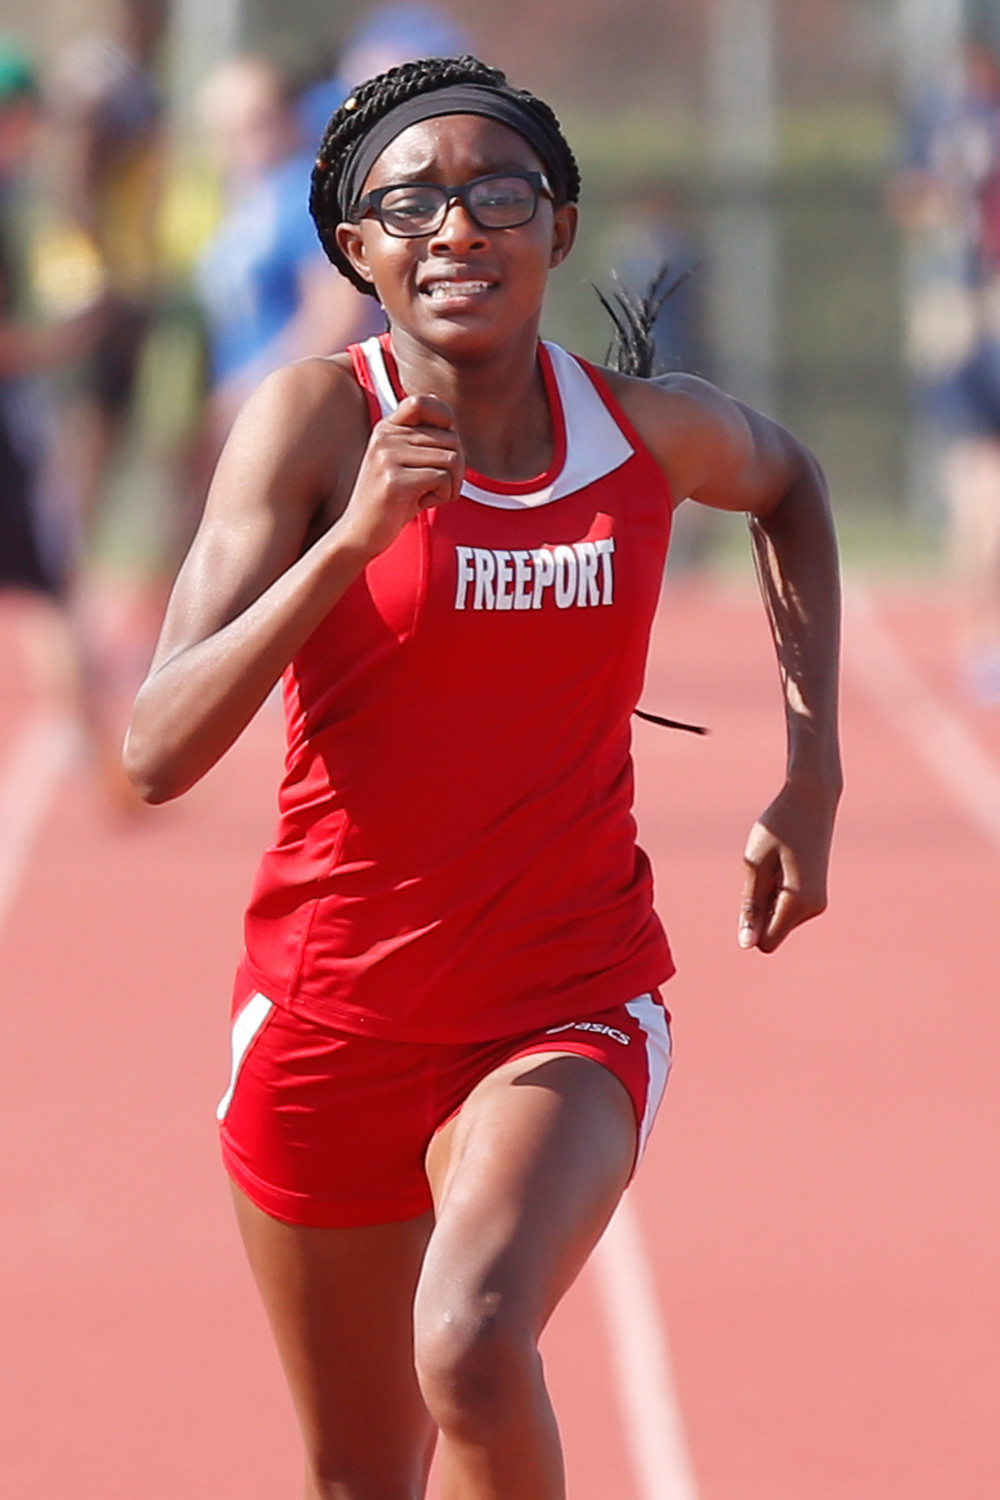 Freeport sophomore Alexandra Yarborugh finished fourth in the 100 meter dash at the Nassau Class AAA championship meet last Friday at Long Beach.